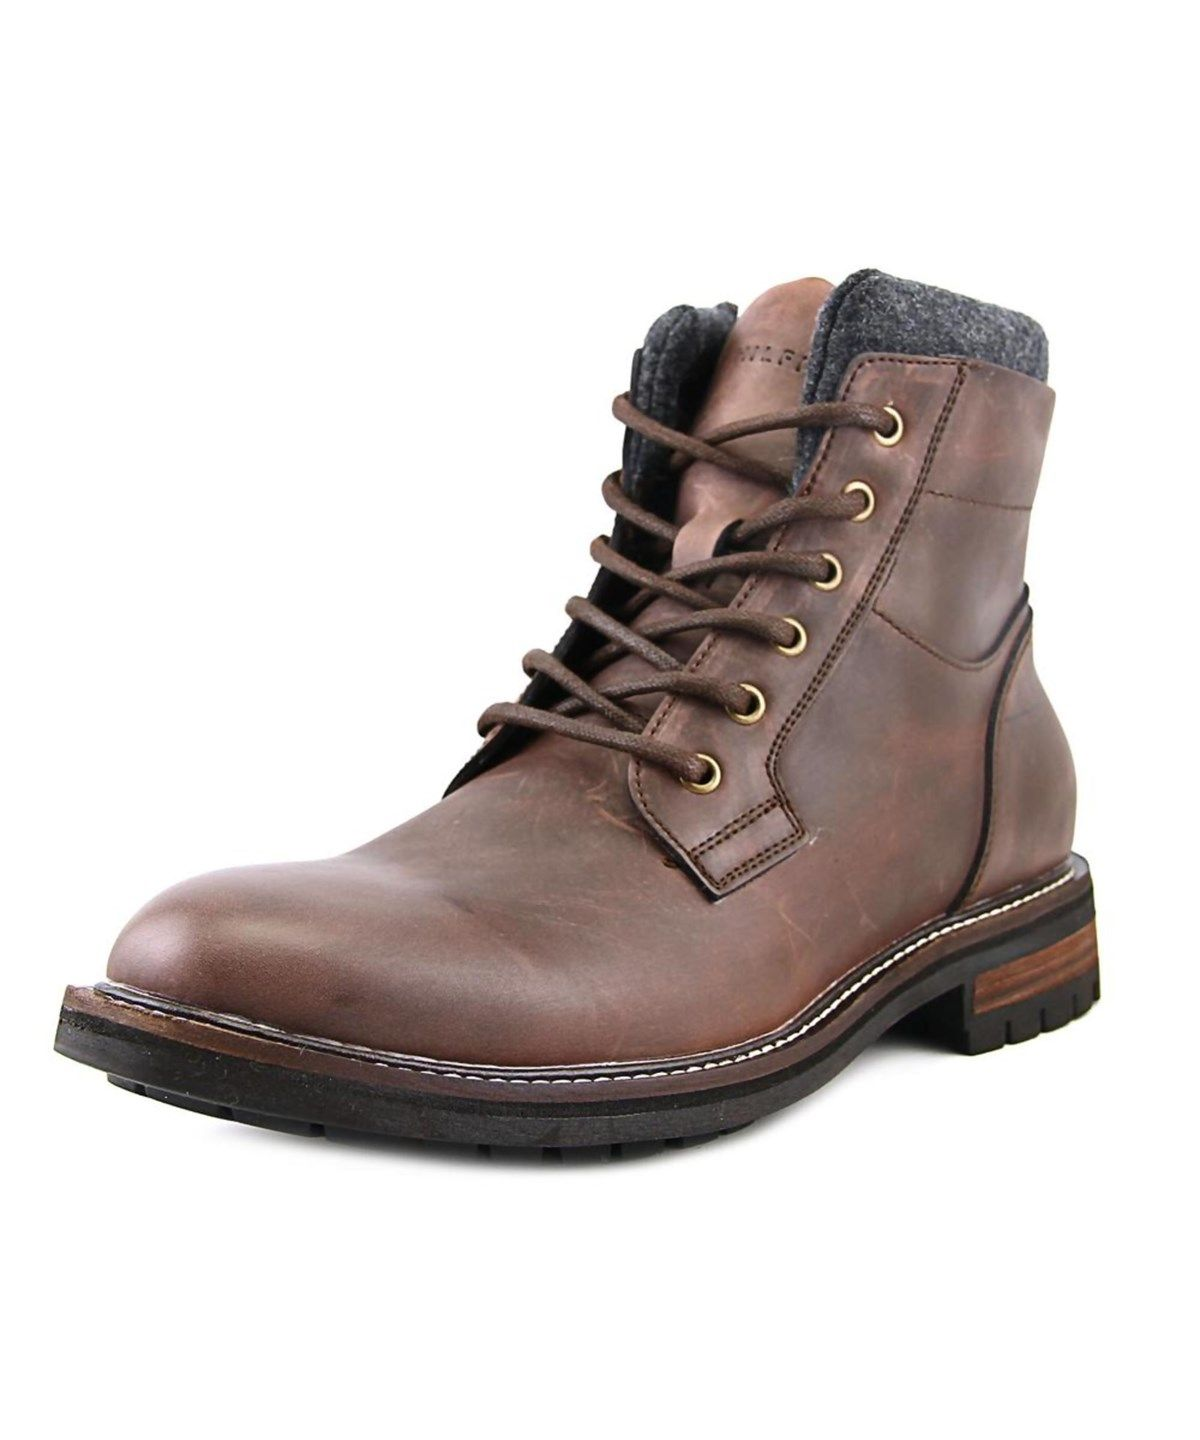 3cdea74b8c1c6 TOMMY HILFIGER Tommy Hilfiger Hamden Men Round Toe Leather Brown Boot .   tommyhilfiger  shoes  boots